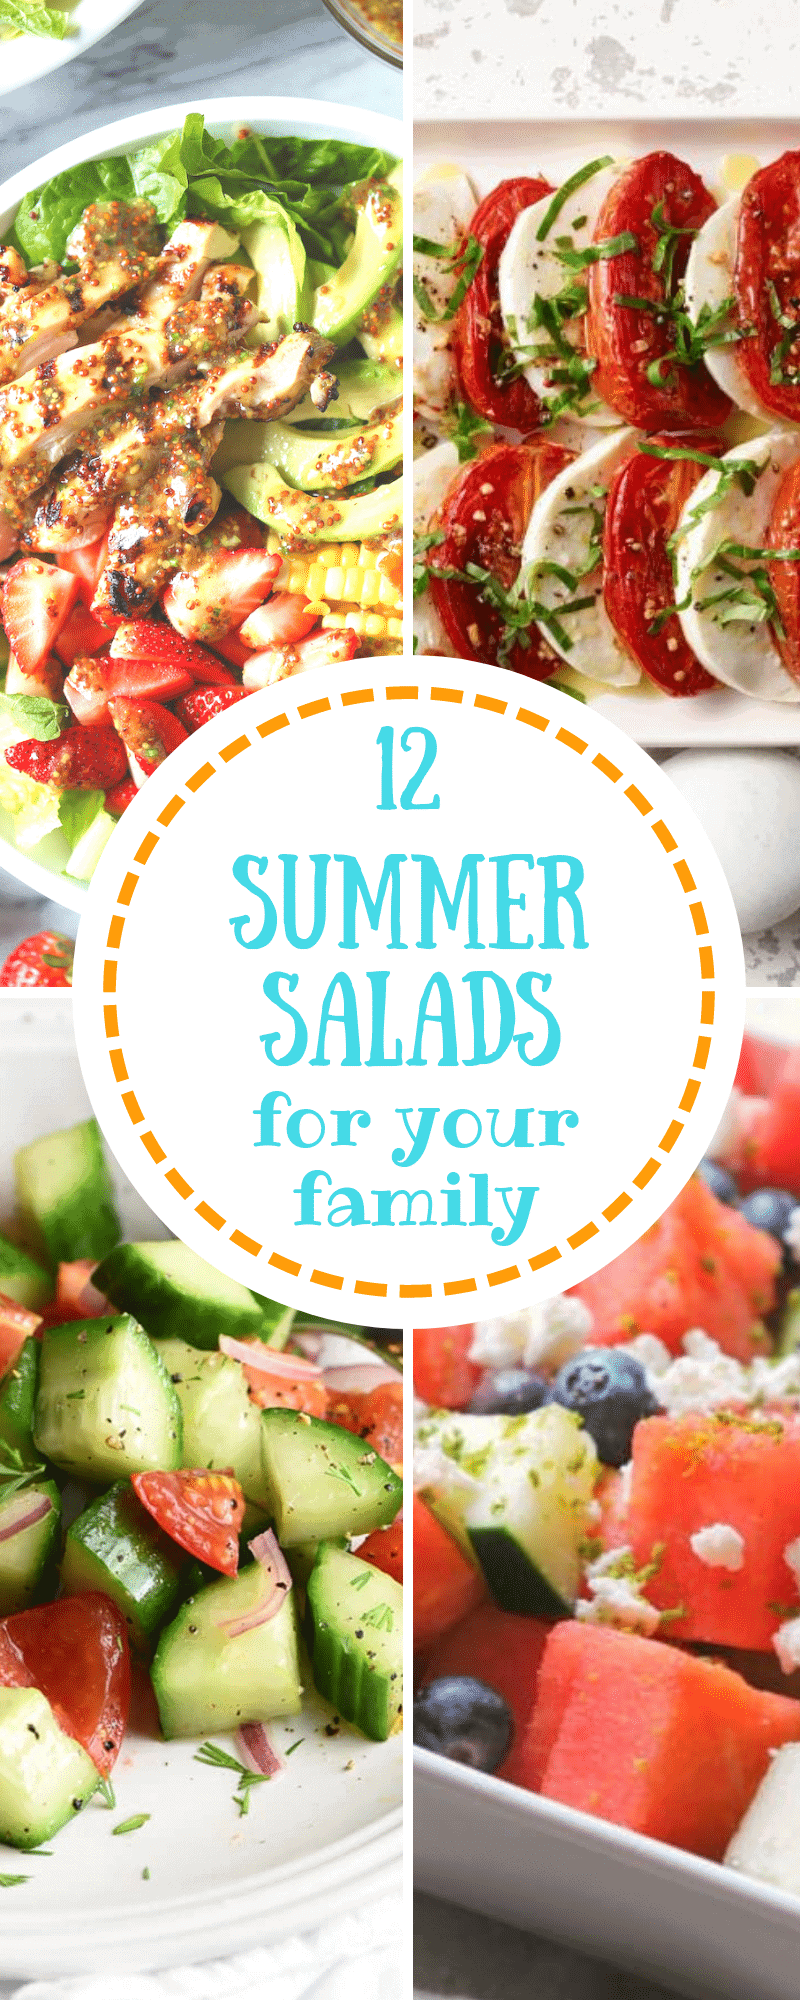 Healthy Summer Salads for Your Family